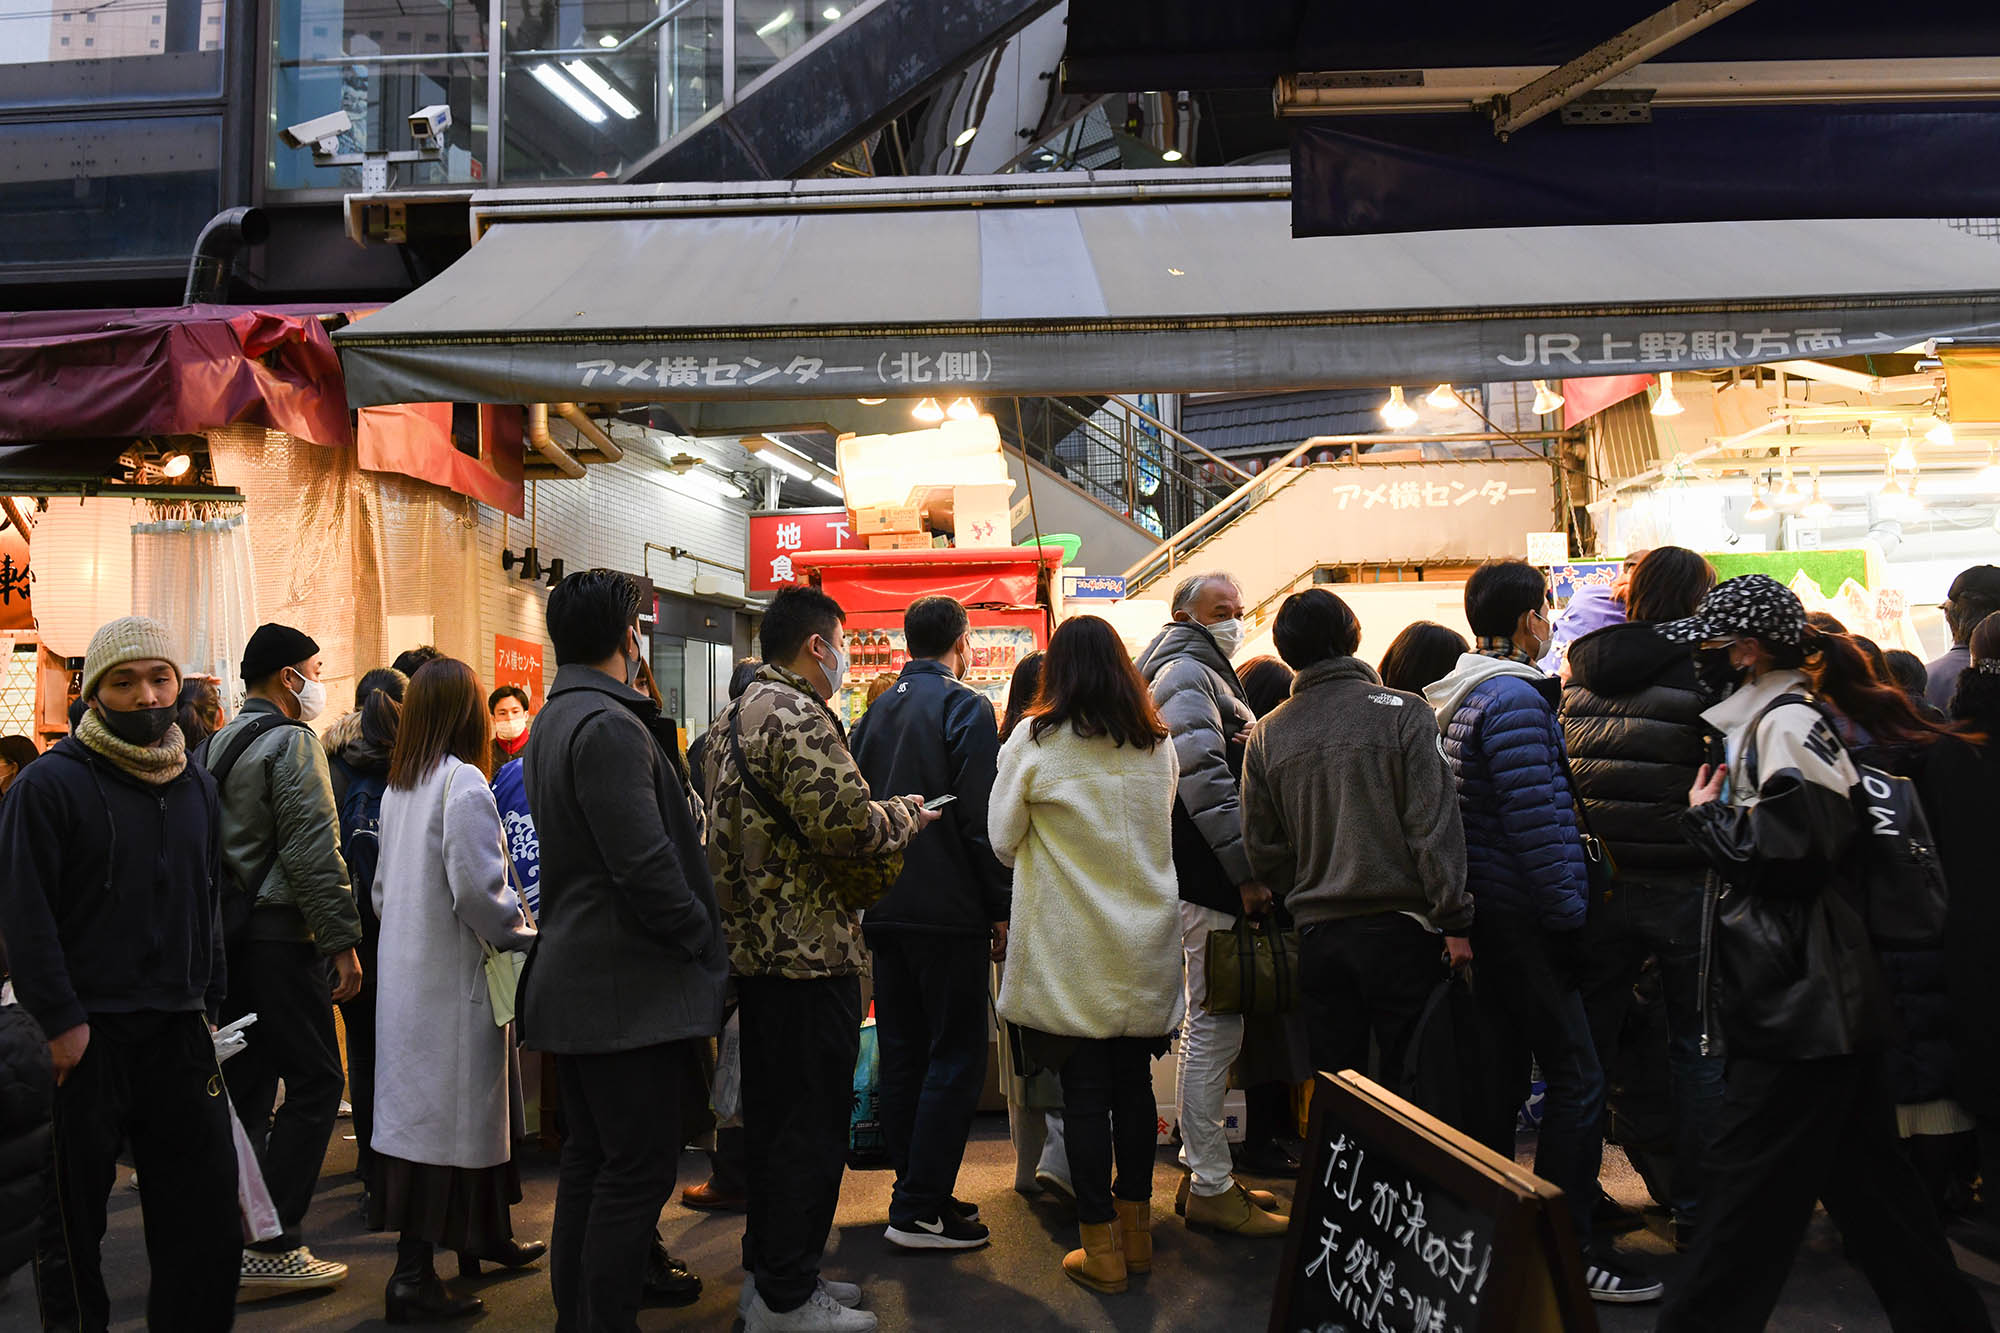 Shoppers stand outside stores at the Ameya Yokocho market in Tokyo, Japan, on Wednesday, December 30.